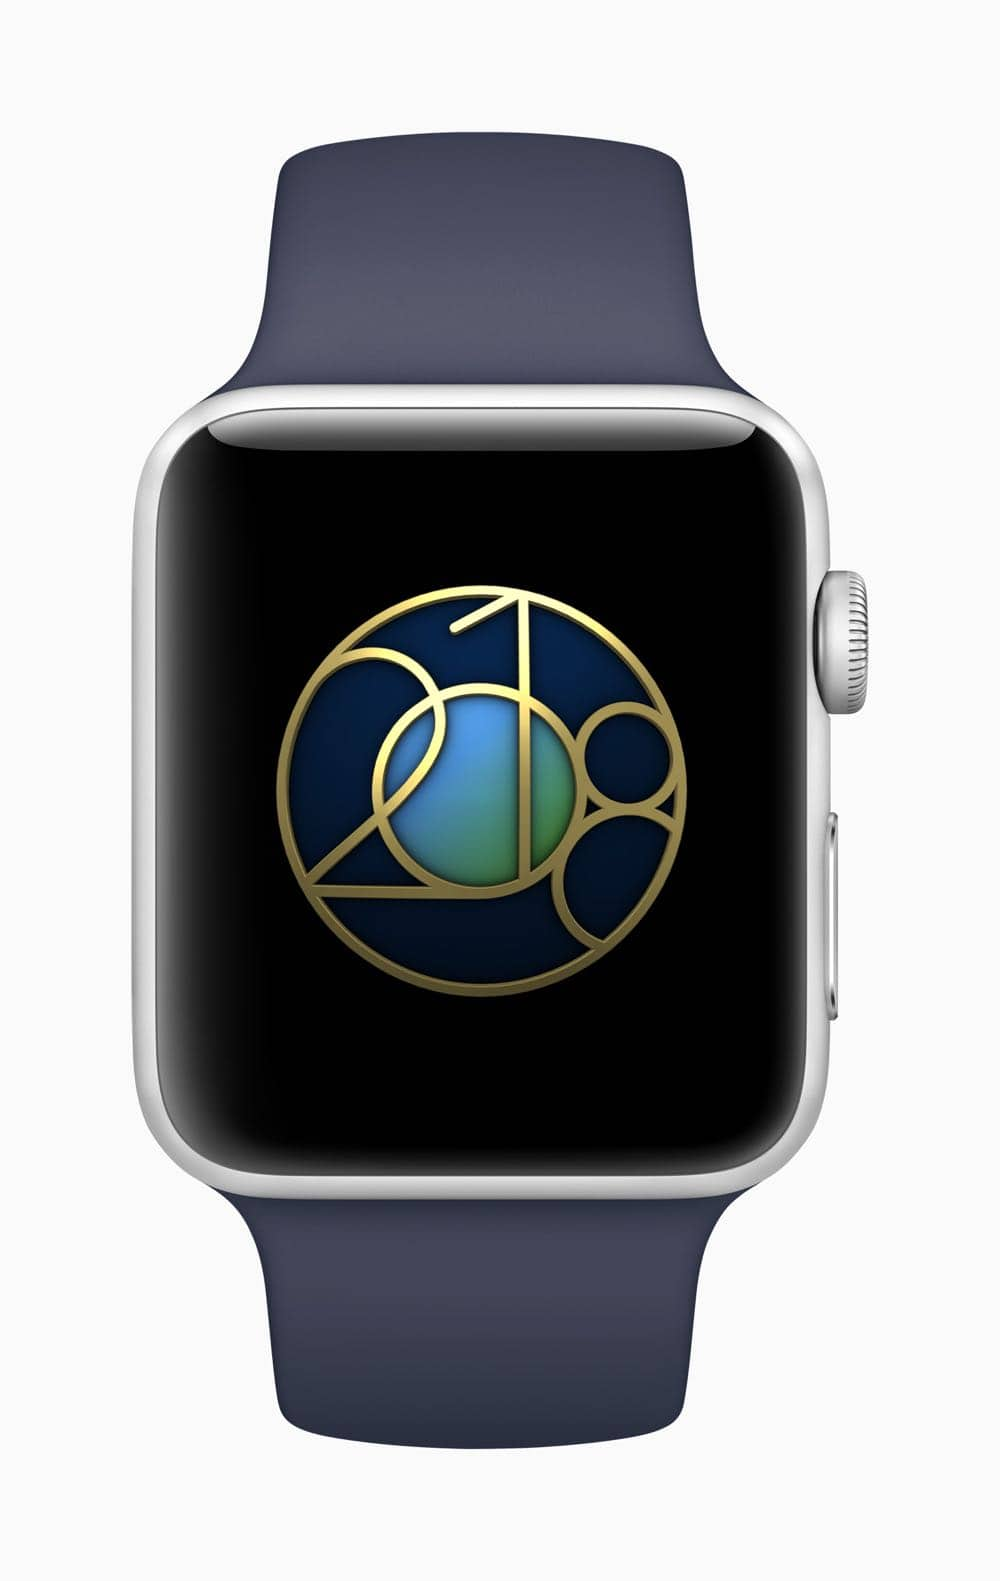 Apple Watch earth day badge 04192018